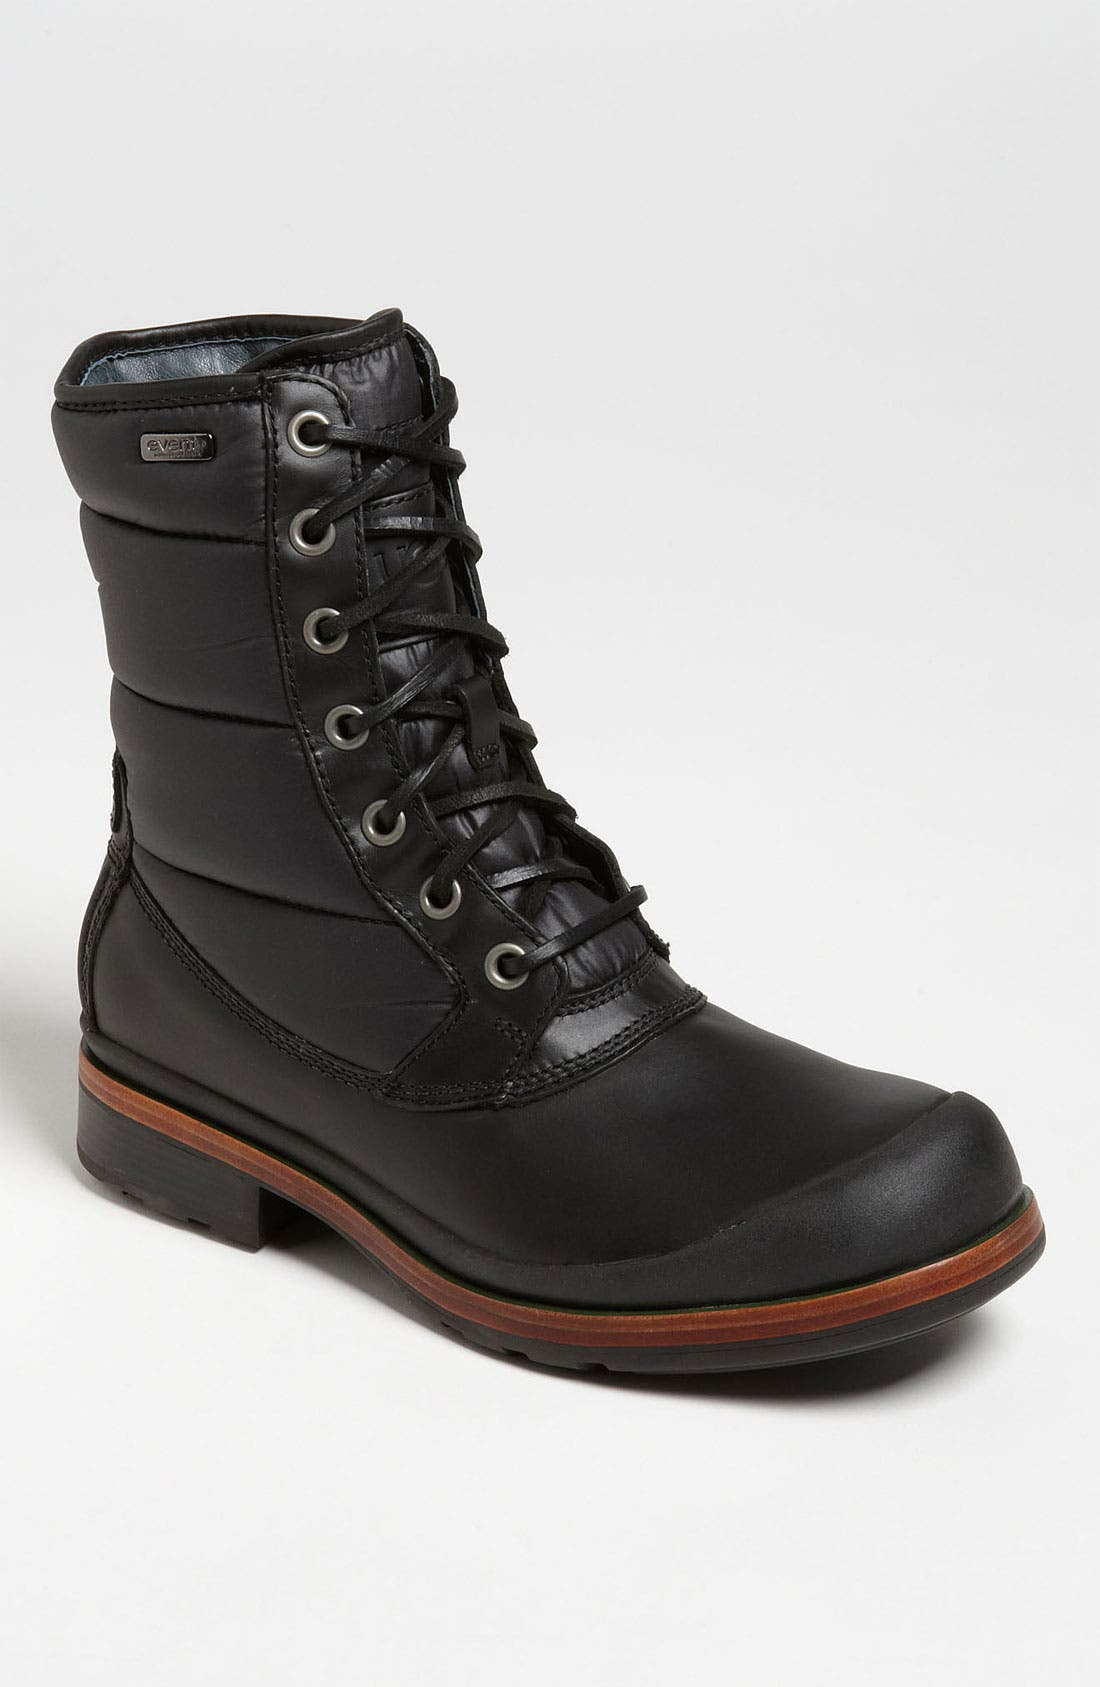 Alternate Image 1 Selected - UGG® Australia 'Hamric' Quilted Snow Boot (Men) (Online Exclusive)